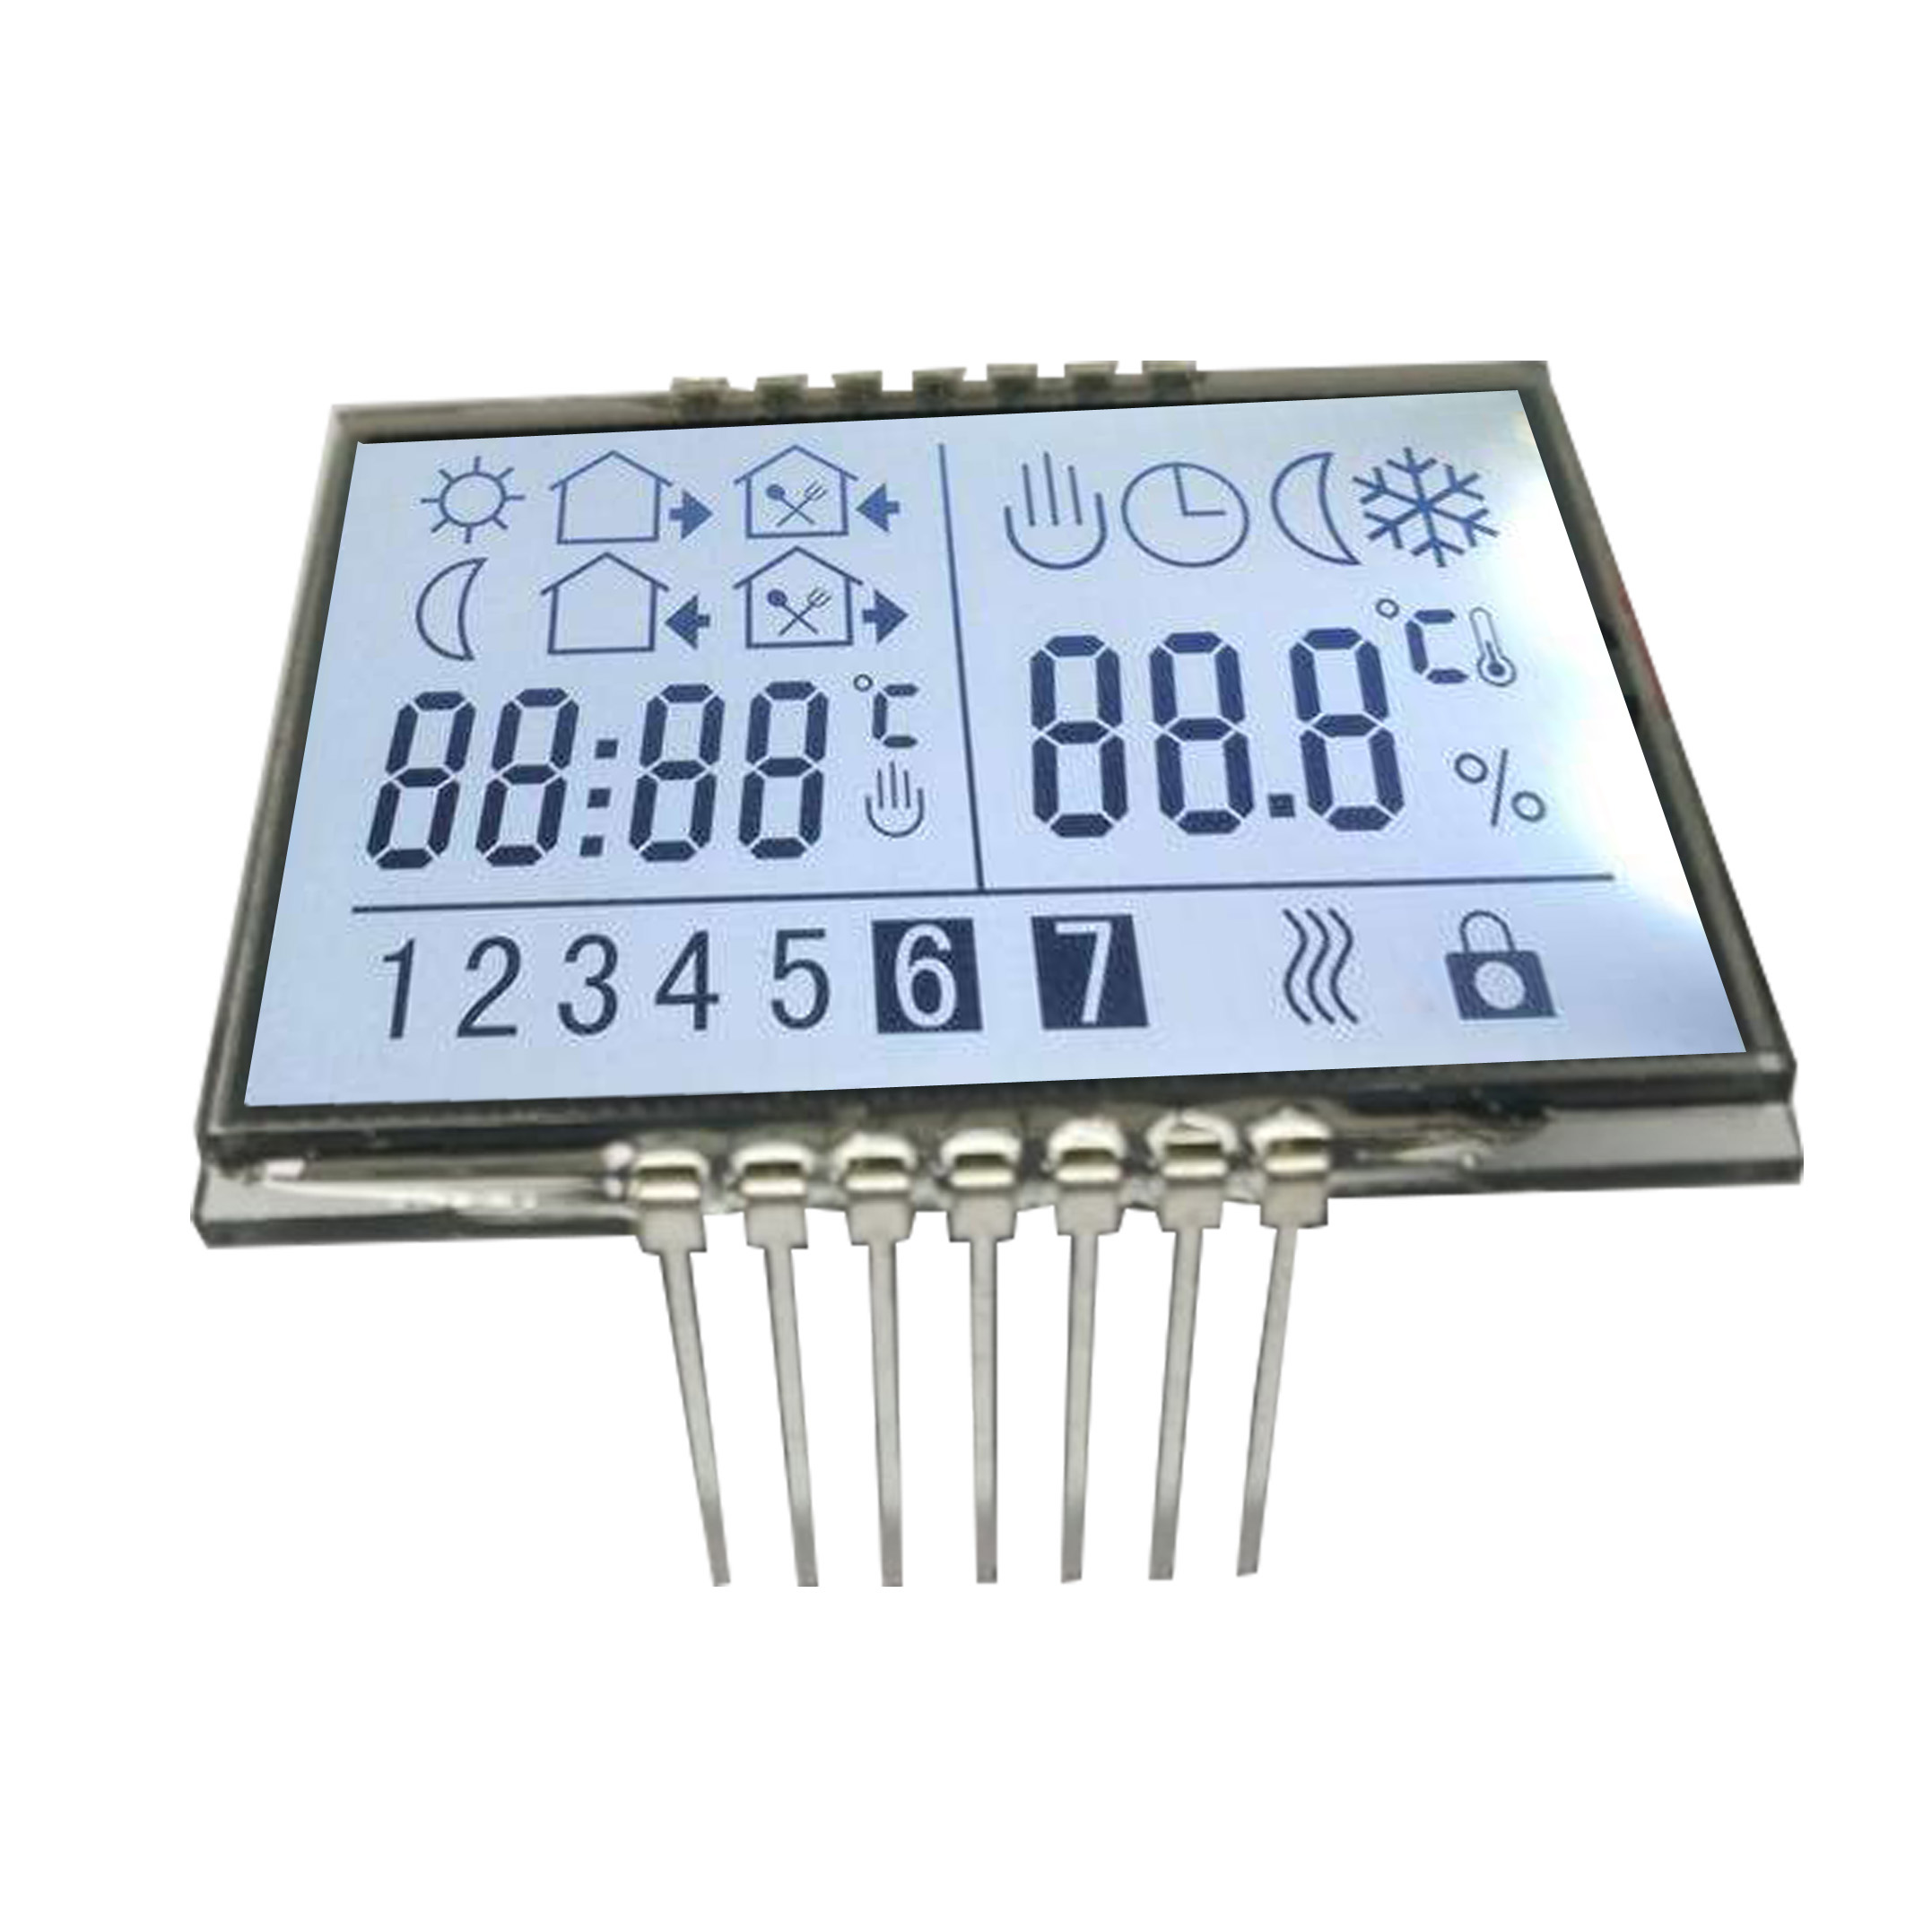 Customized 14 pin 7 segment display 2 digit lcd screen 1 inch transflective lcd display